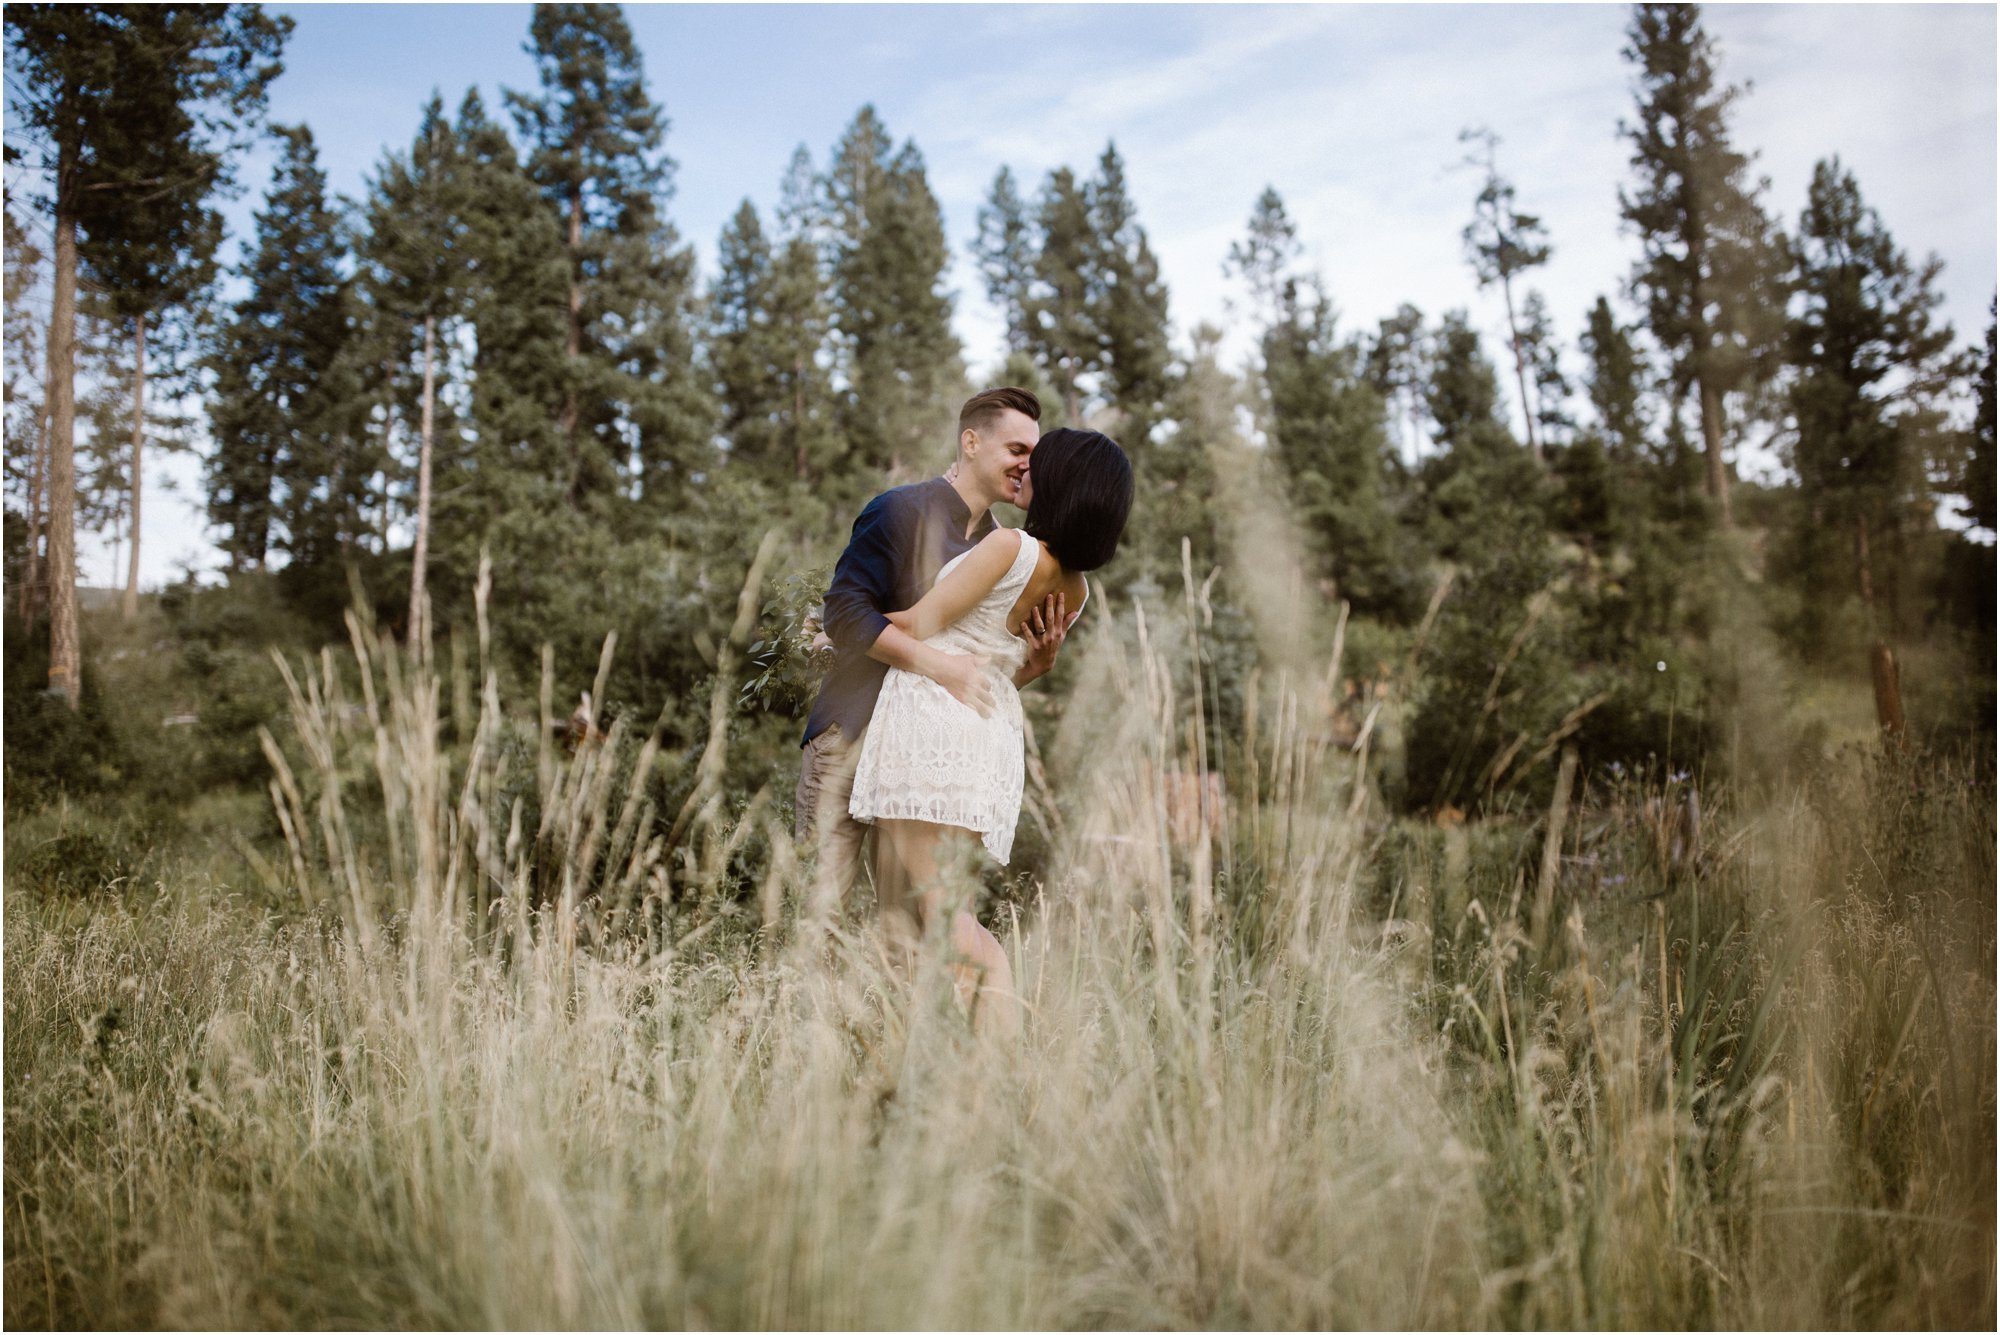 038Blue Rose Photography_ Albuquerque Engagement Photographer_ Blue Rose Studios_ Anniversary Pictures Santa Fe Photographer